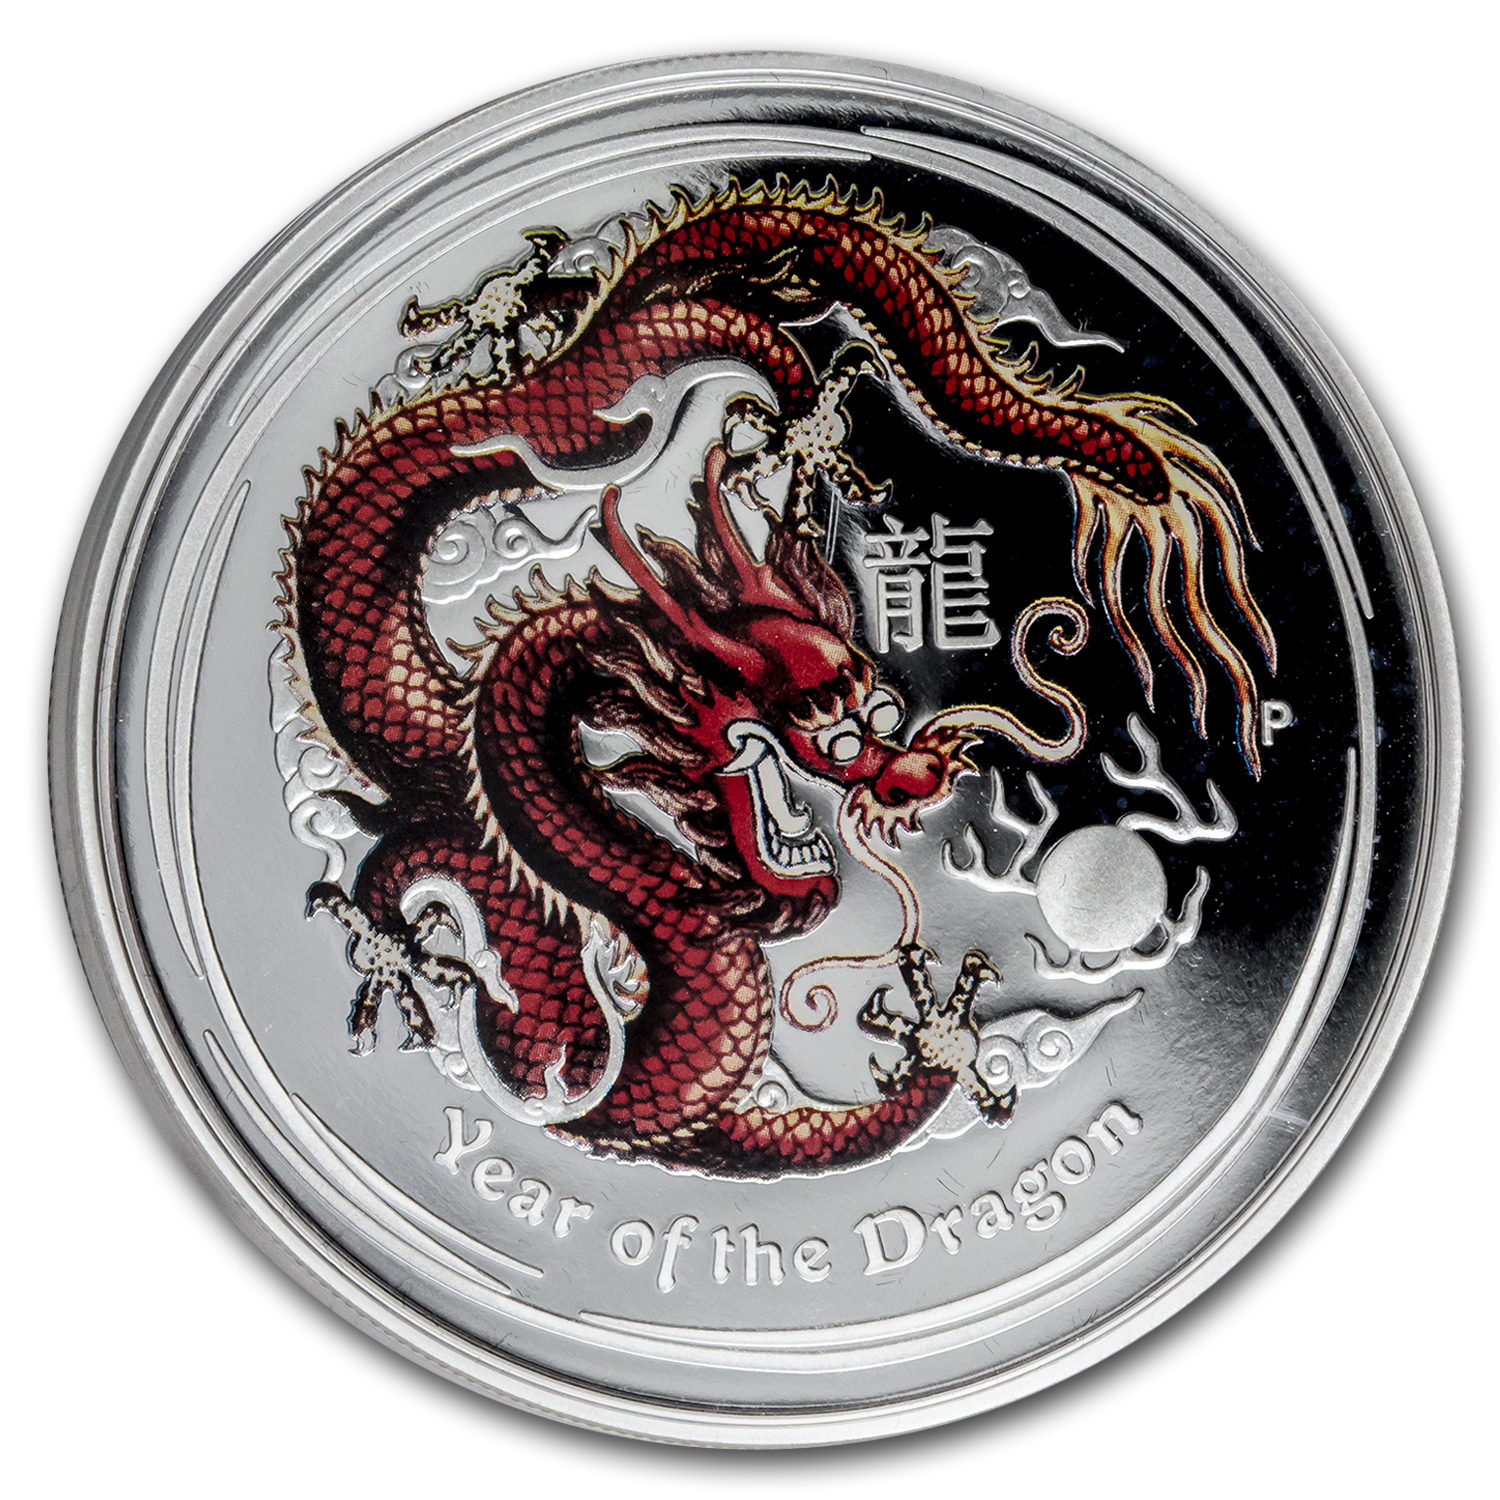 2012 Australia 1 oz Silver Year of the Dragon Proof (Colorized)